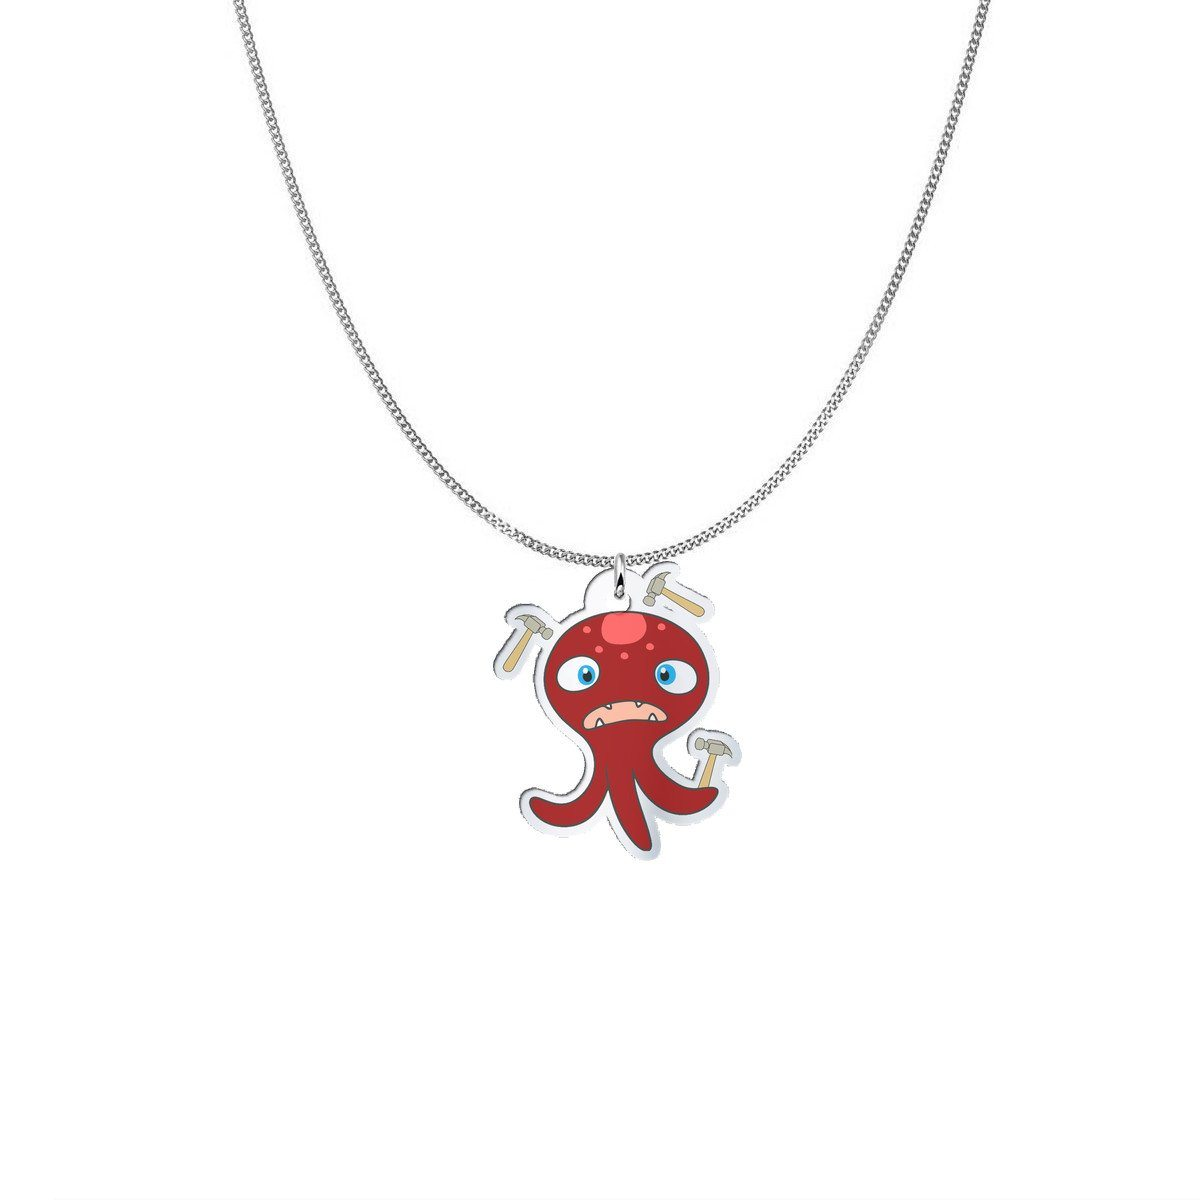 Pendant - Pod The Migraine Monster Silver Necklace